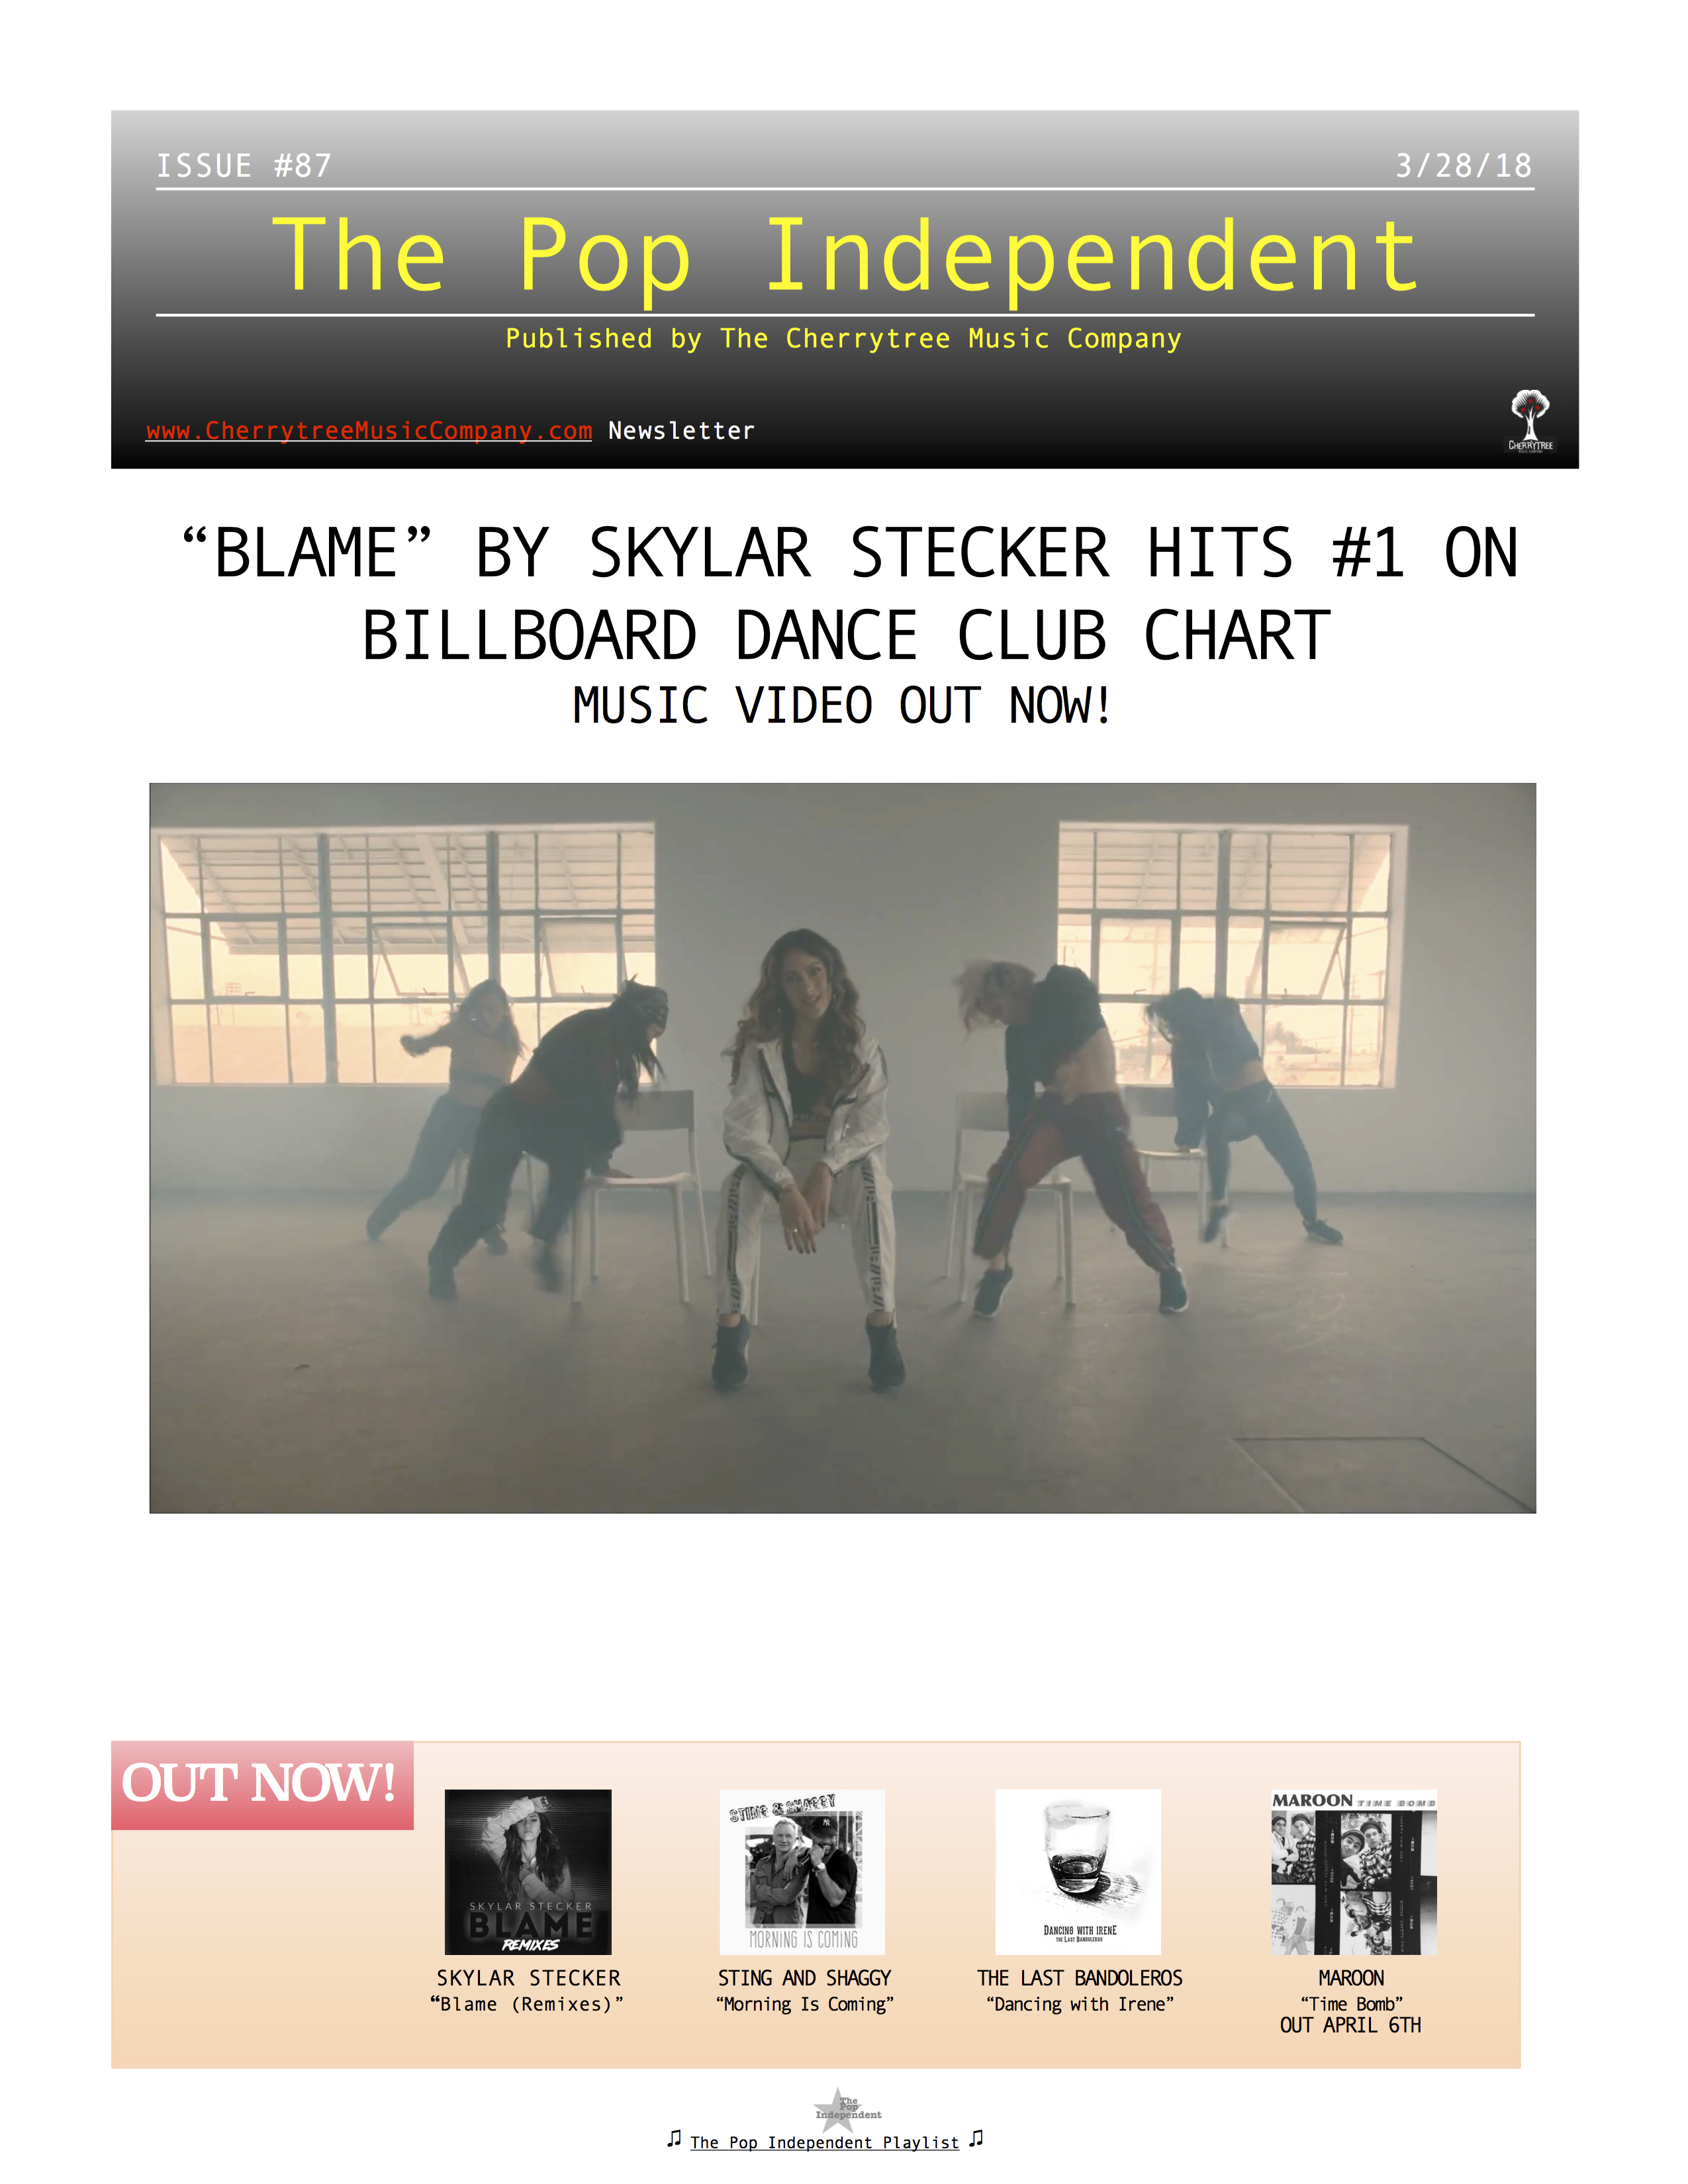 The Pop Independent, issue 87